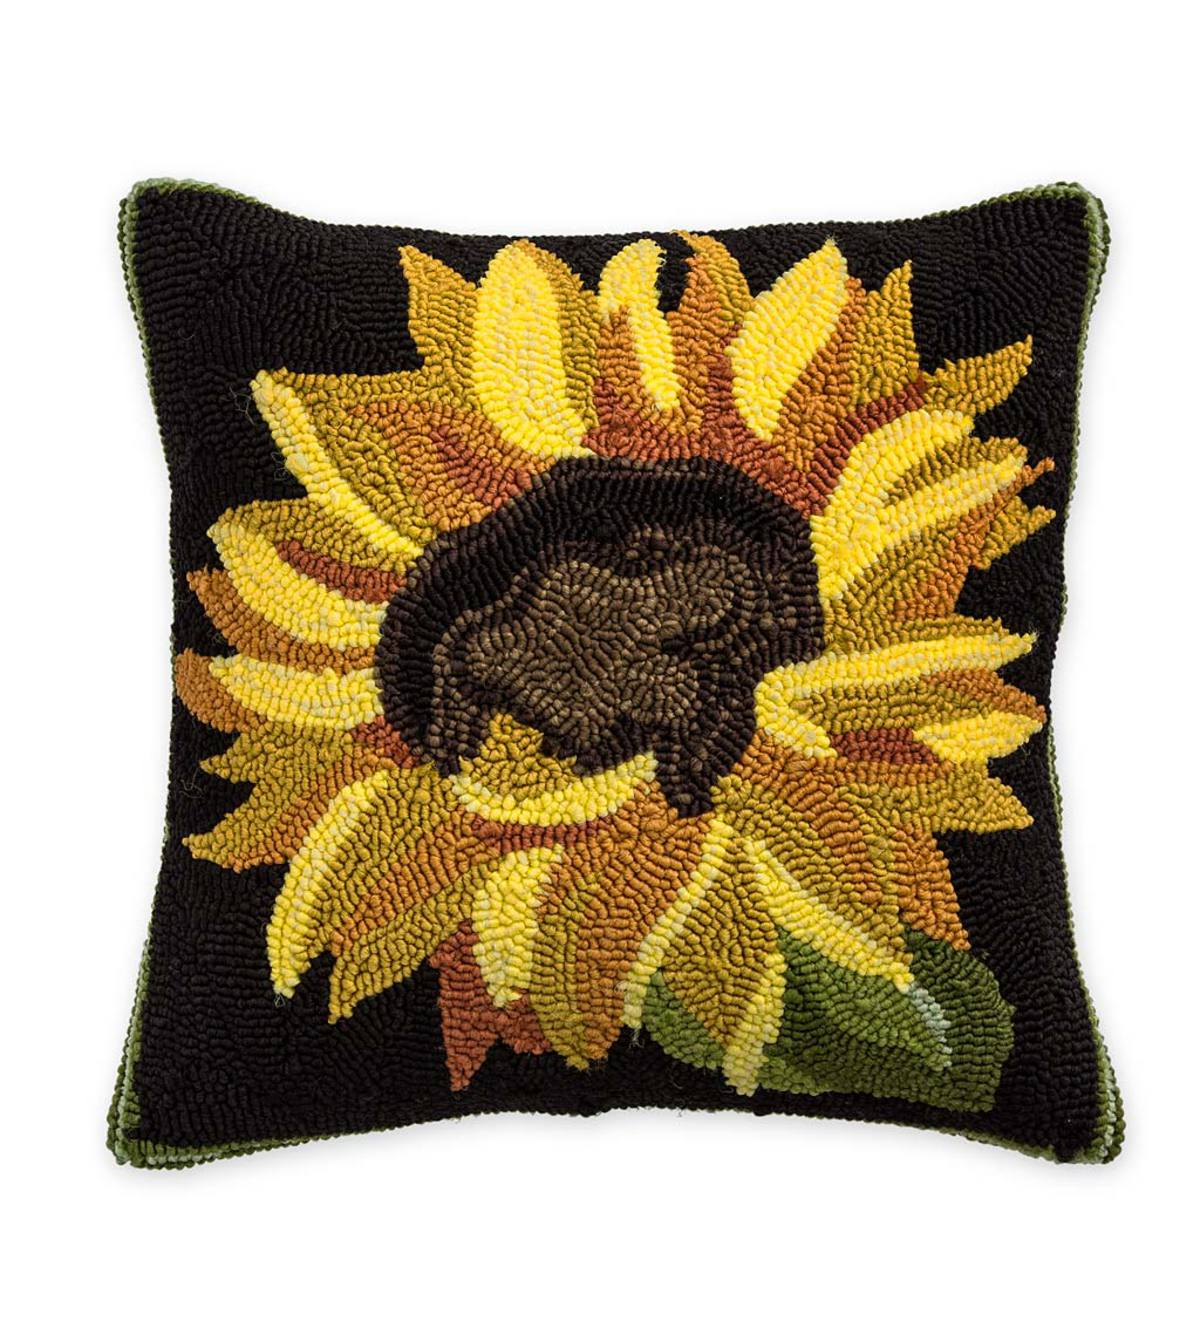 Indoor Outdoor Sunflower Throw Pillow Plowhearth